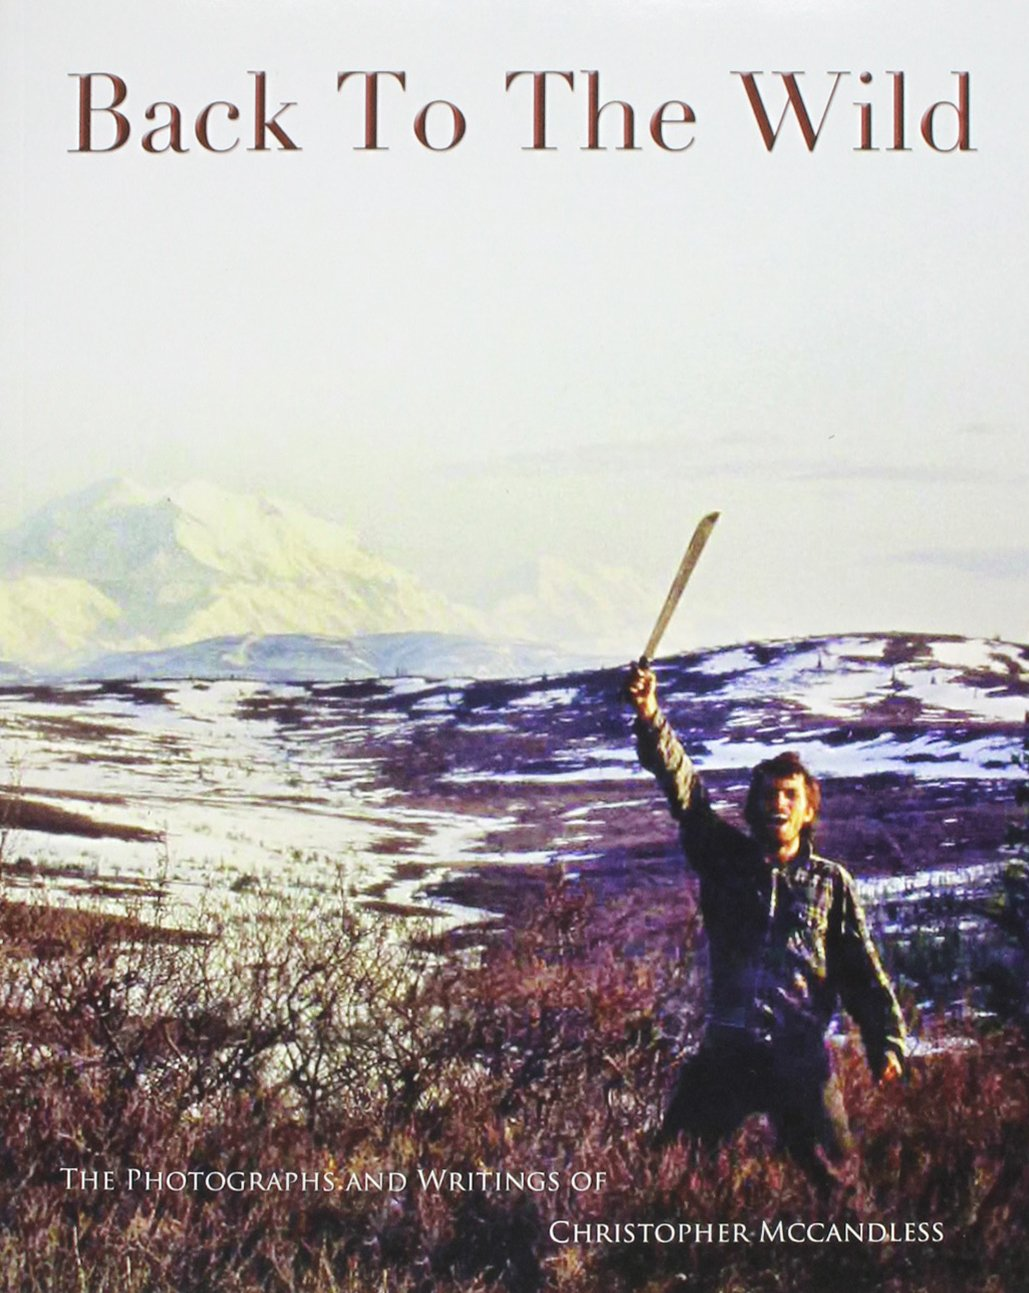 back to the wild christopher mccandless  back to the wild christopher mccandless 9780983395508 com books